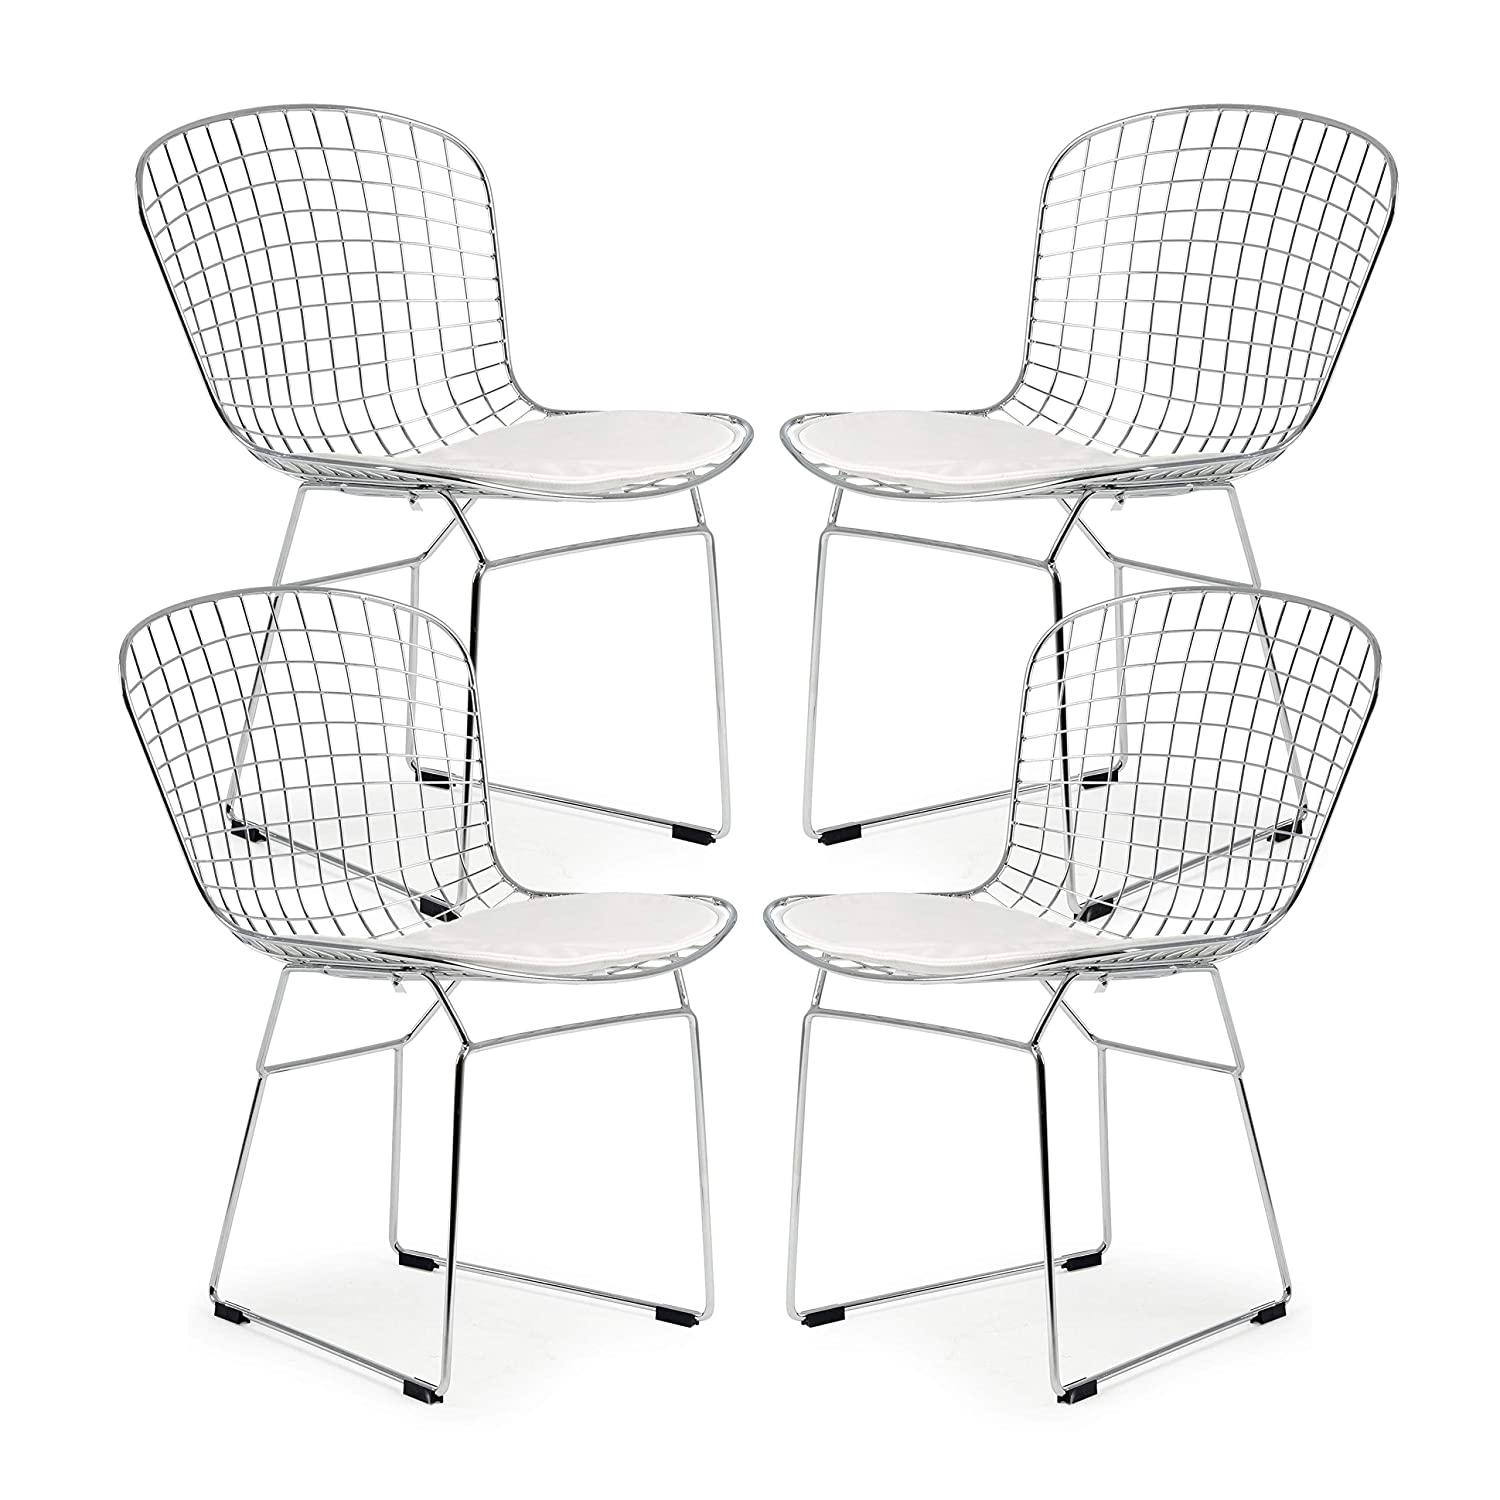 Poly and Bark Morph Side Chair in White Set of 4